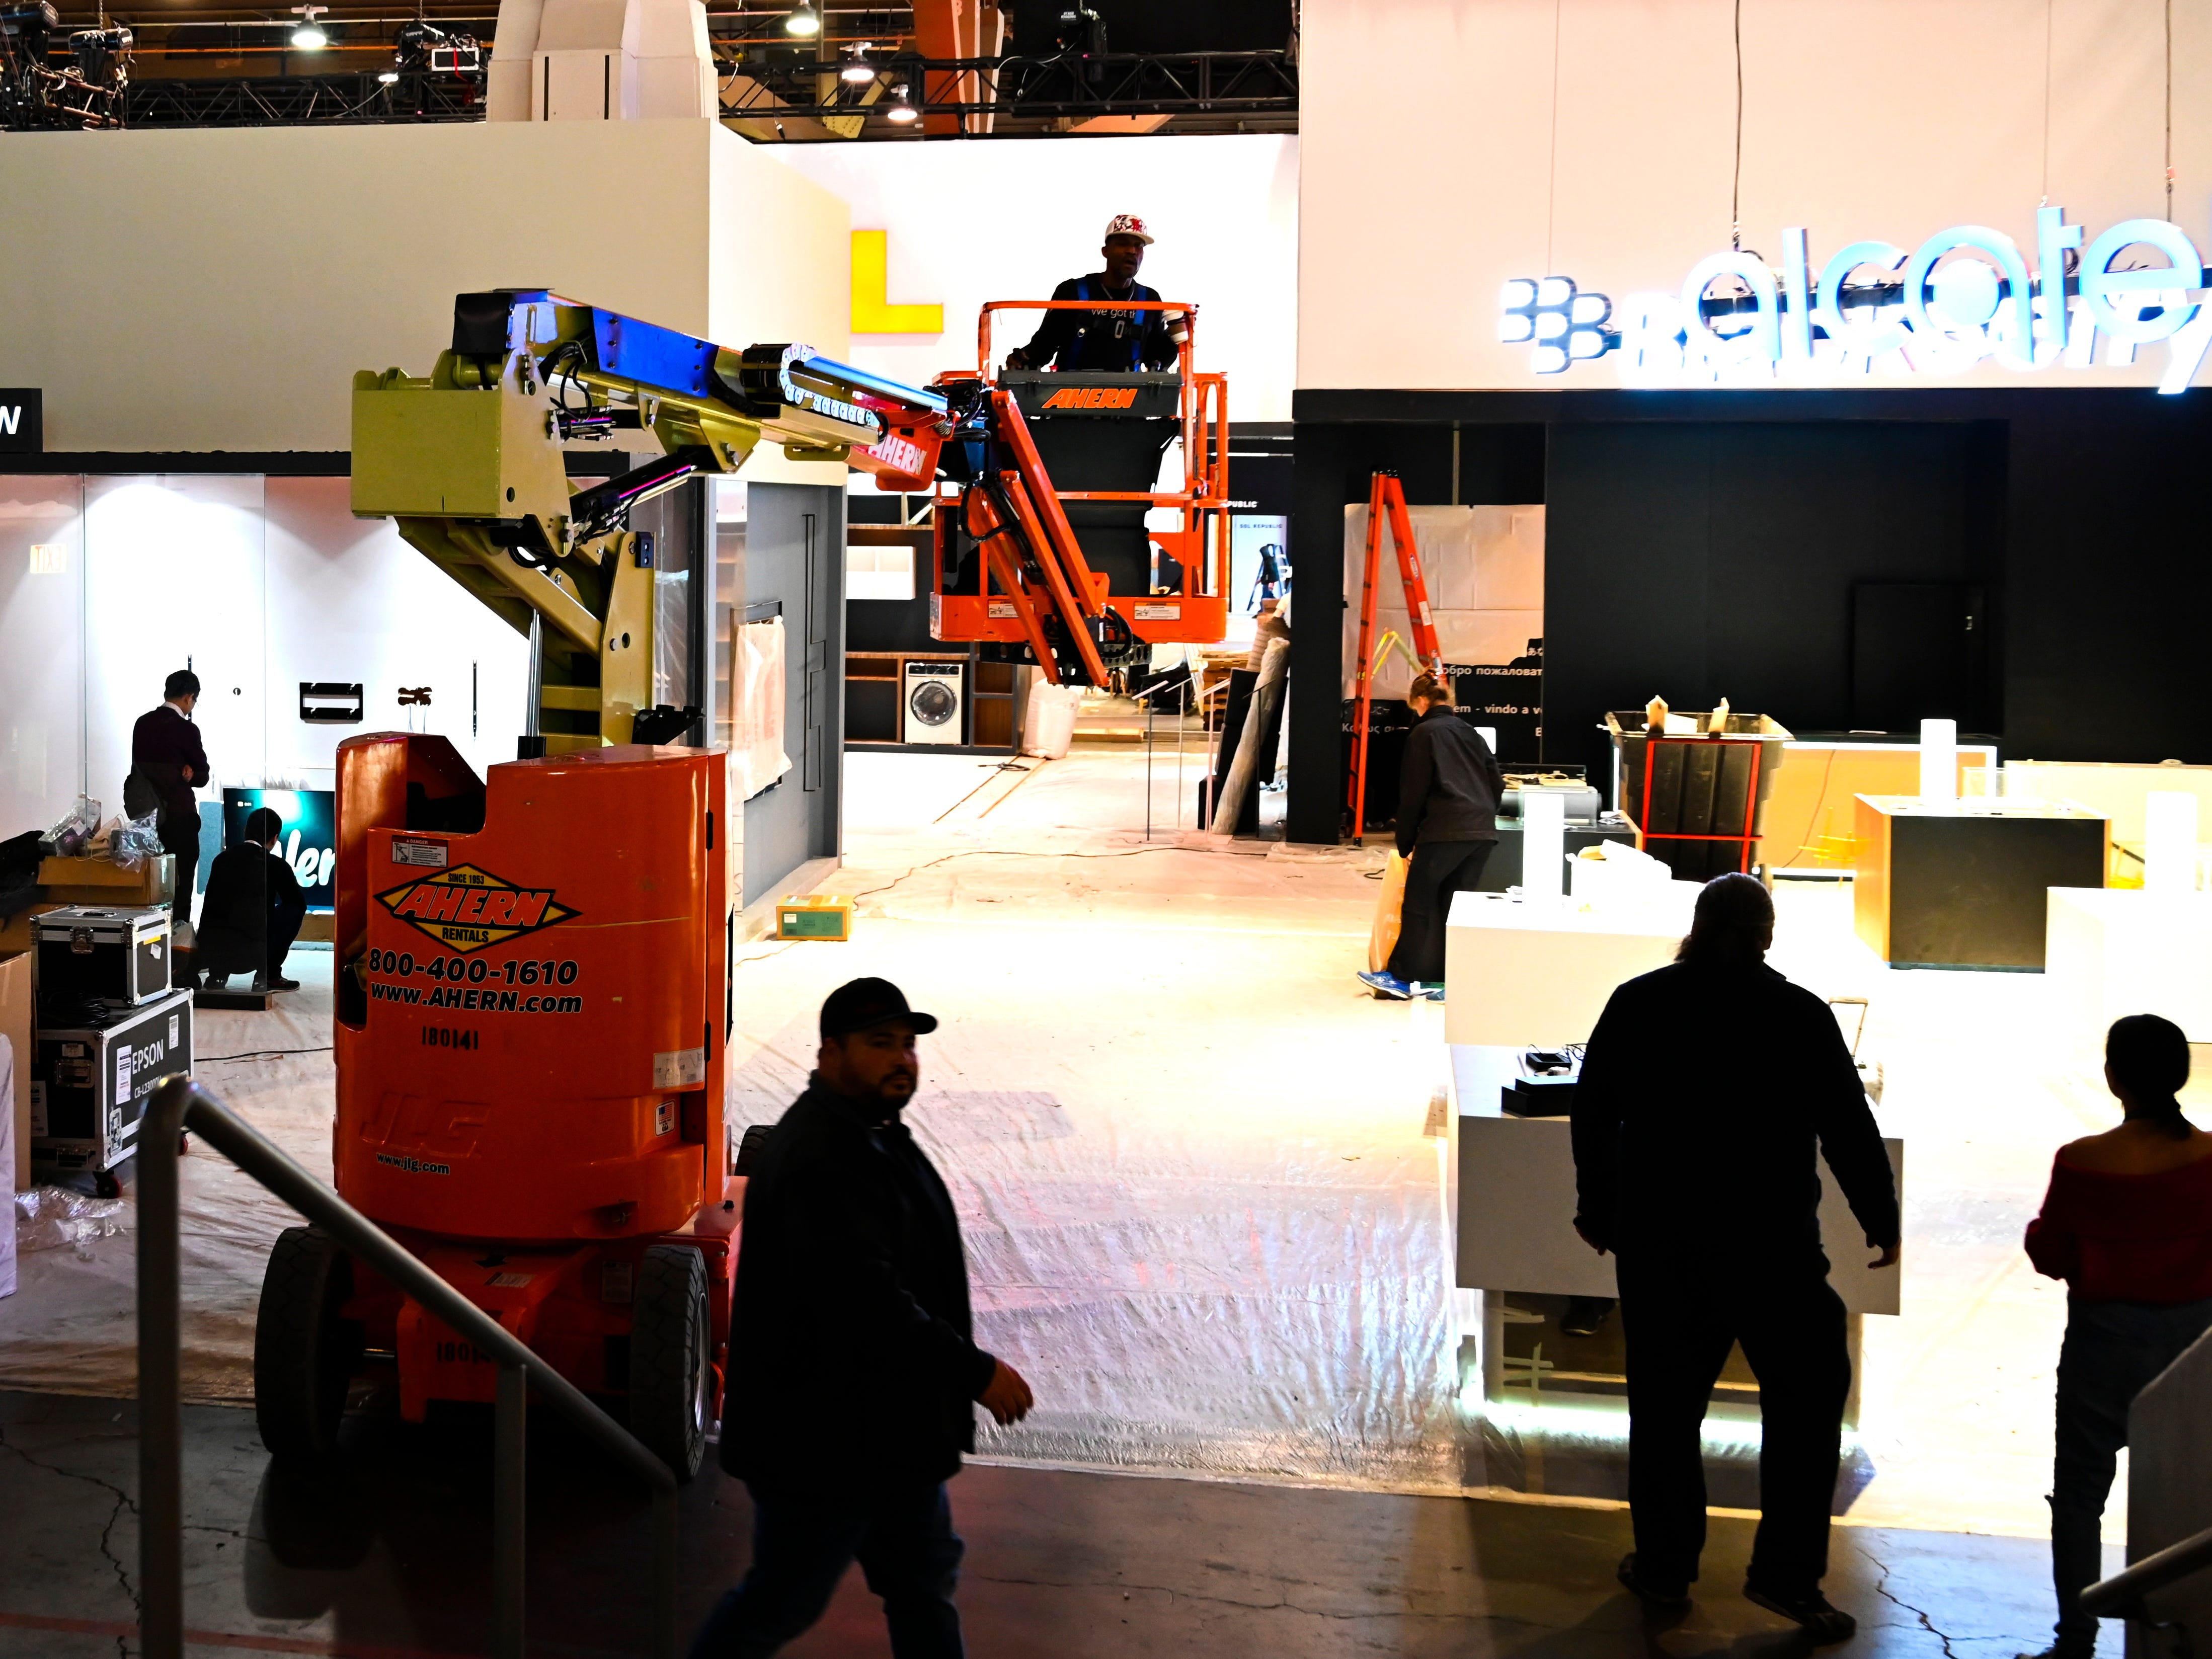 The Las Vegas Convention South Hall was a buzz of activity as work crews finished up construction of displays in preparation for Consumer Electronics Show 2019.